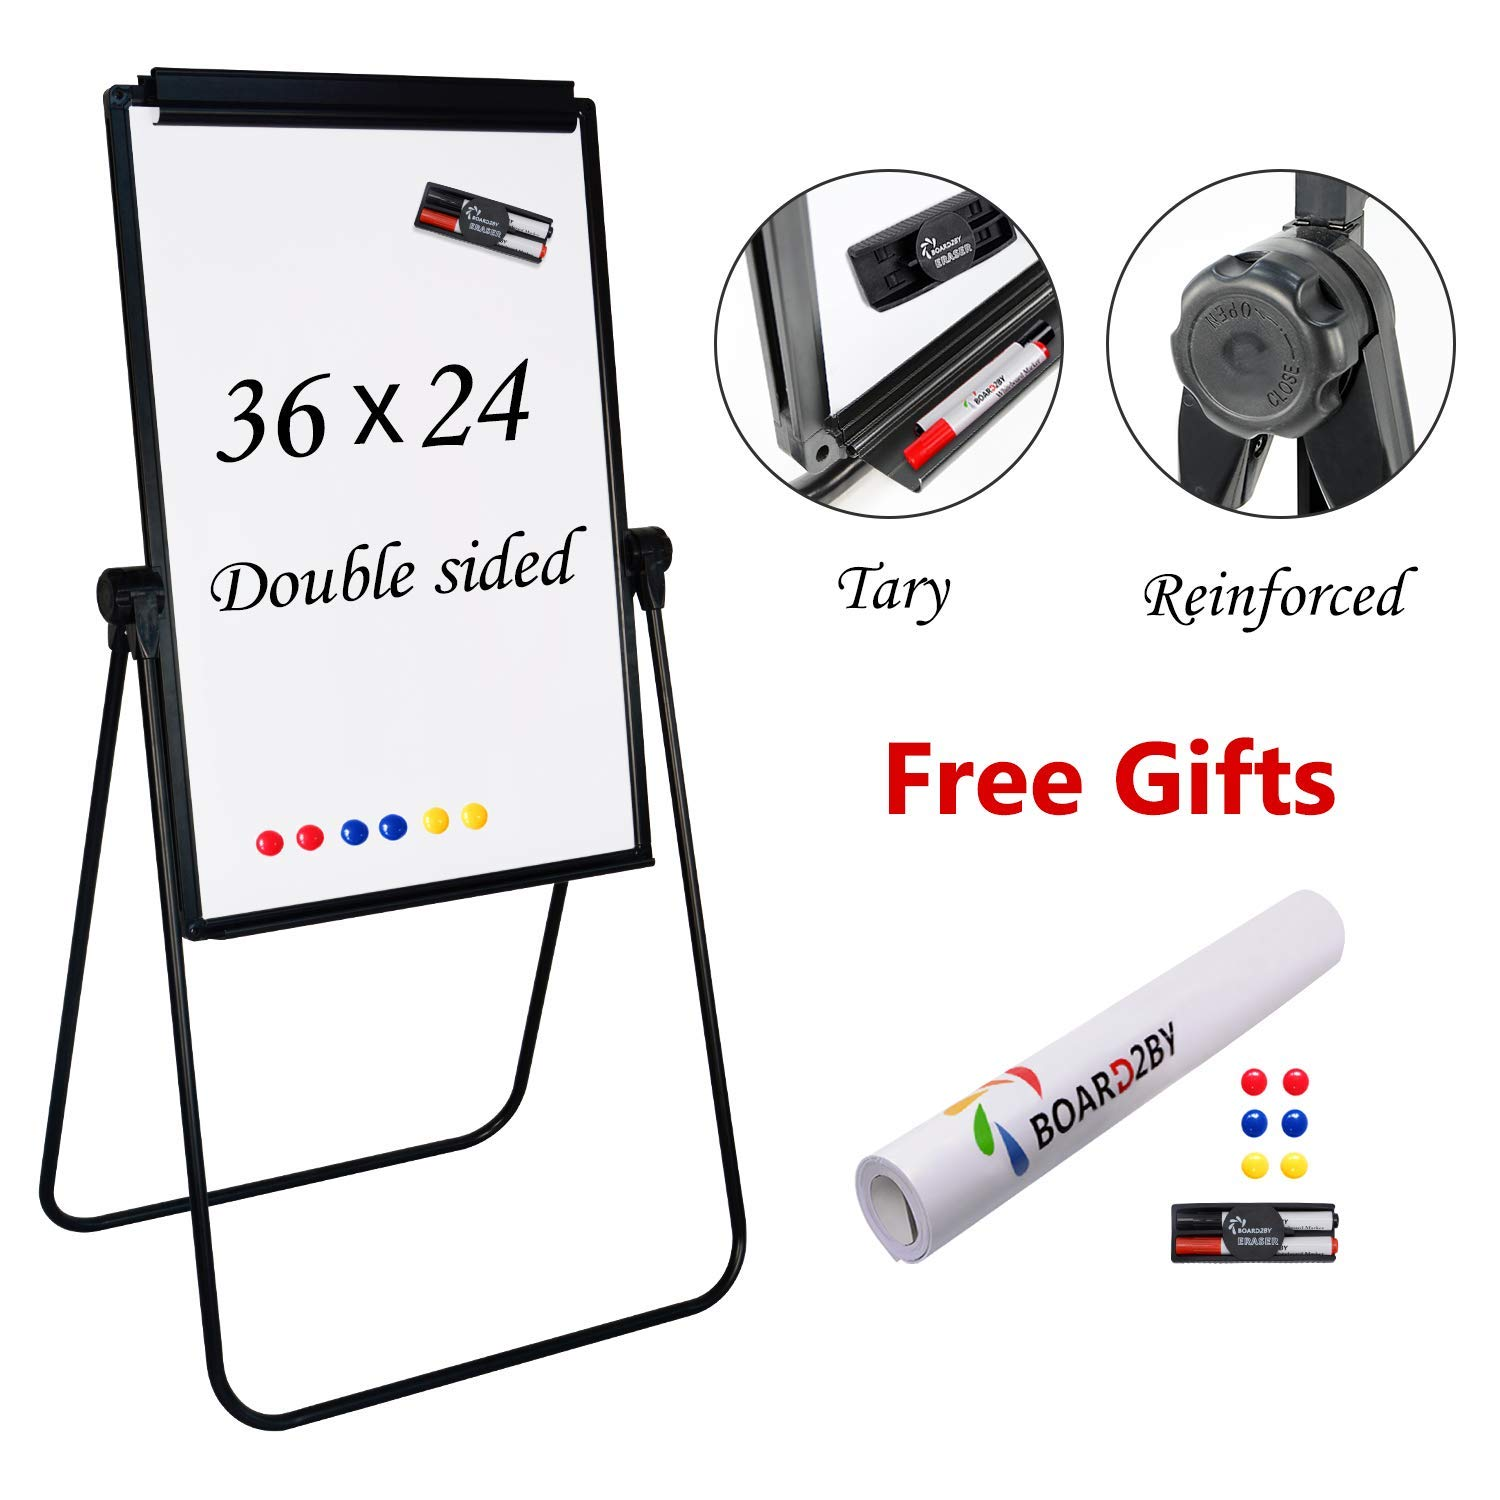 Board2by U Stand Whiteboard Easel - 24'' x 36'' Double Sided Magnetic Dry Erase Flipchart Black Stand, 360 Degree Rotating, Exclusive Design Magnetic Eraser&Pens, 25-Sheet Papers, 6 Magnets for Free